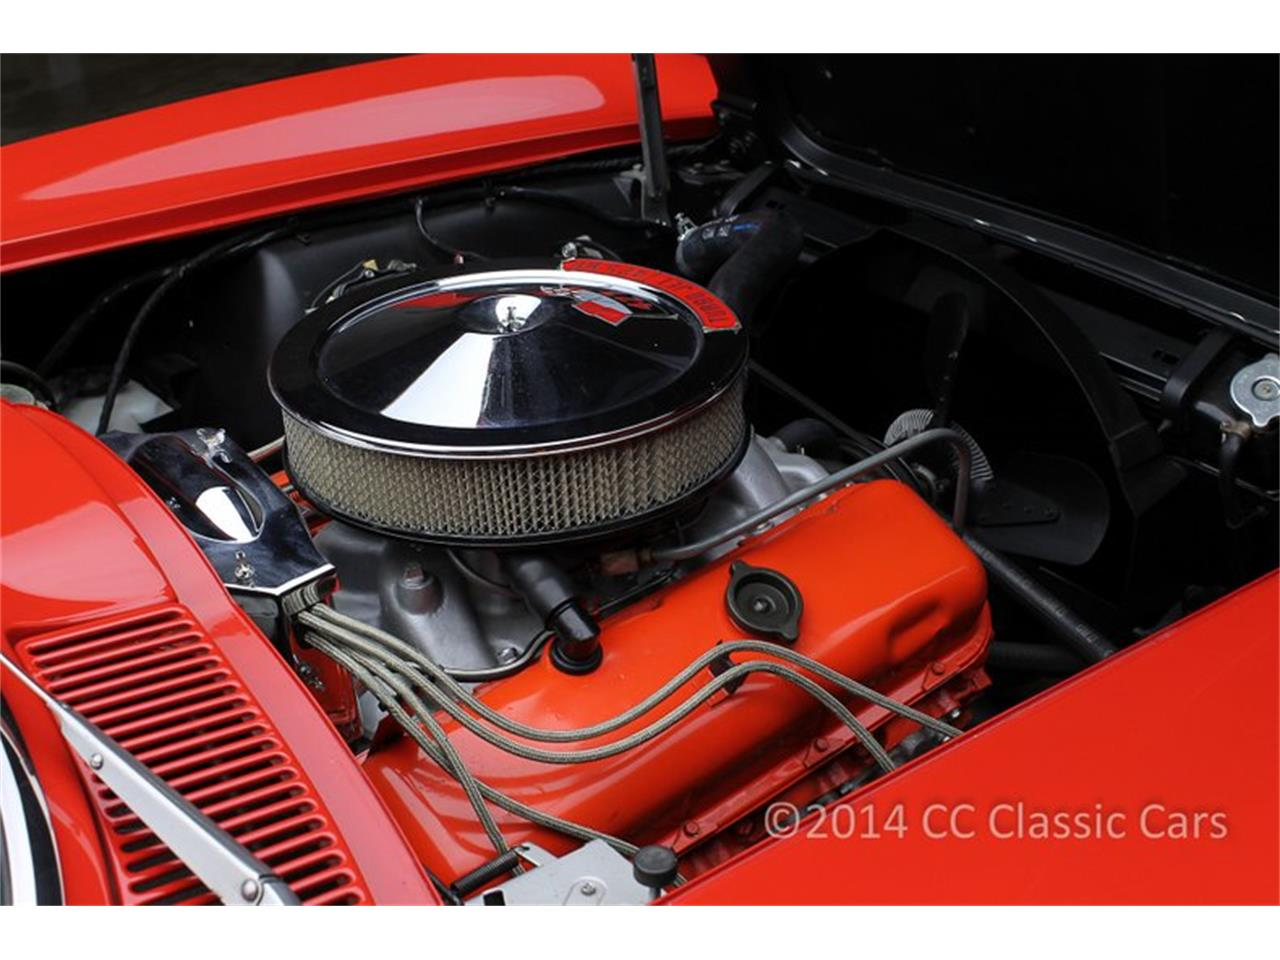 Large Picture of Classic '66 Corvette Auction Vehicle Offered by CC Classic Cars - HZ0A